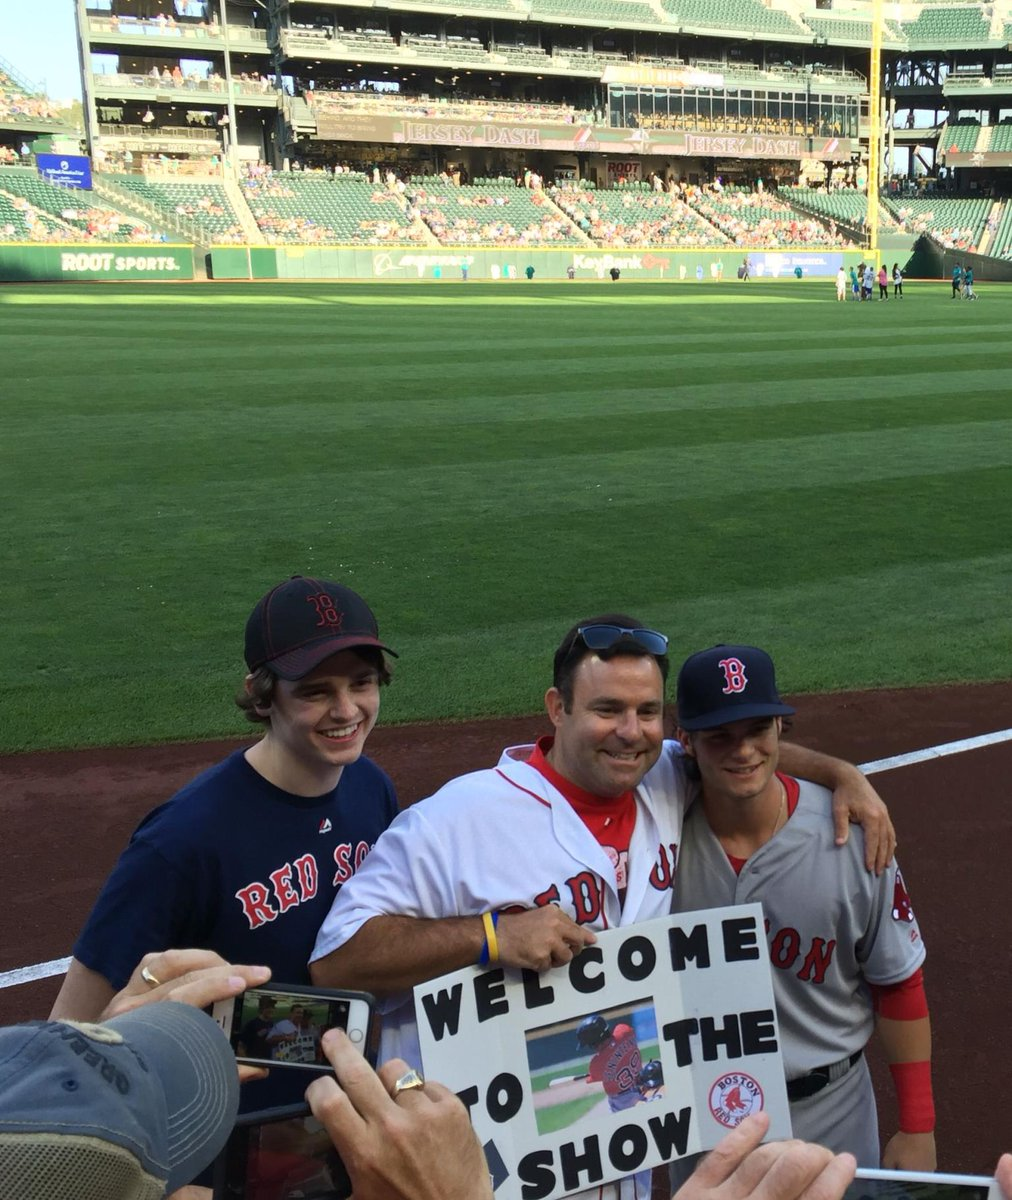 &quot;Me, top #RedSox #prospect #Andrew Benintendi with his father holding the sign I made for his first big league...&quot; #baseball #mlb #sports<br>http://pic.twitter.com/iGOeGPNyqT